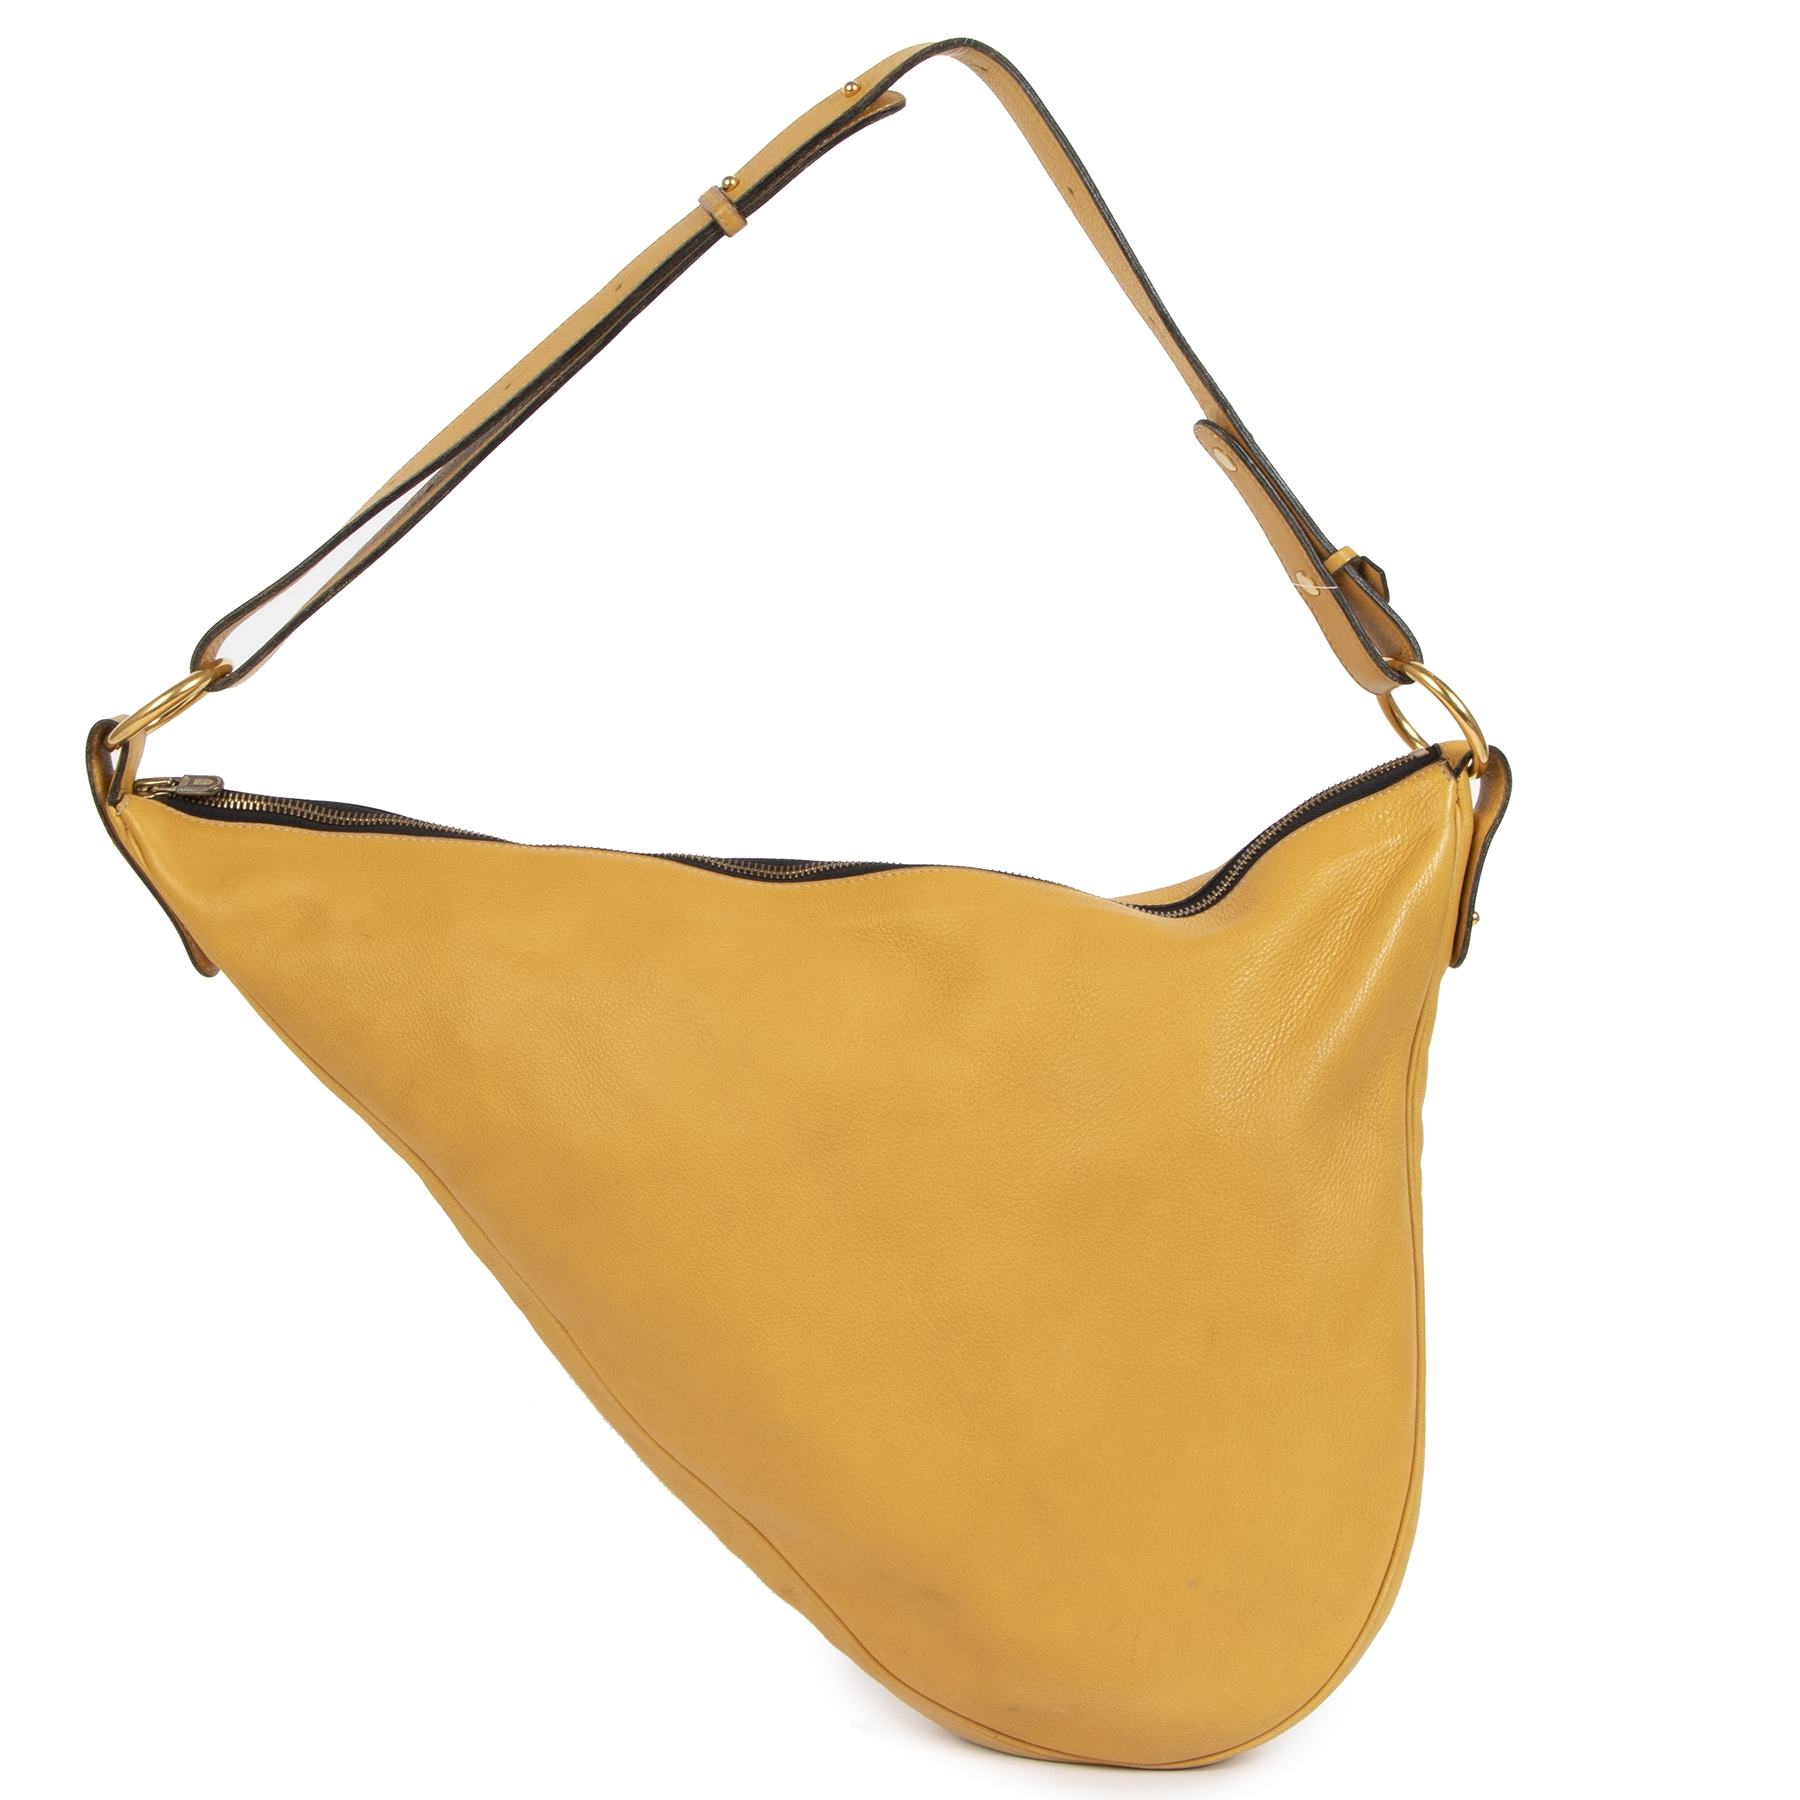 Authentic secondhand Delvaux Ochre Yellow Sling Leather Bag designer bags designer accessories luxury vintage webshop worldwide shipping fashion safe secure online shopping